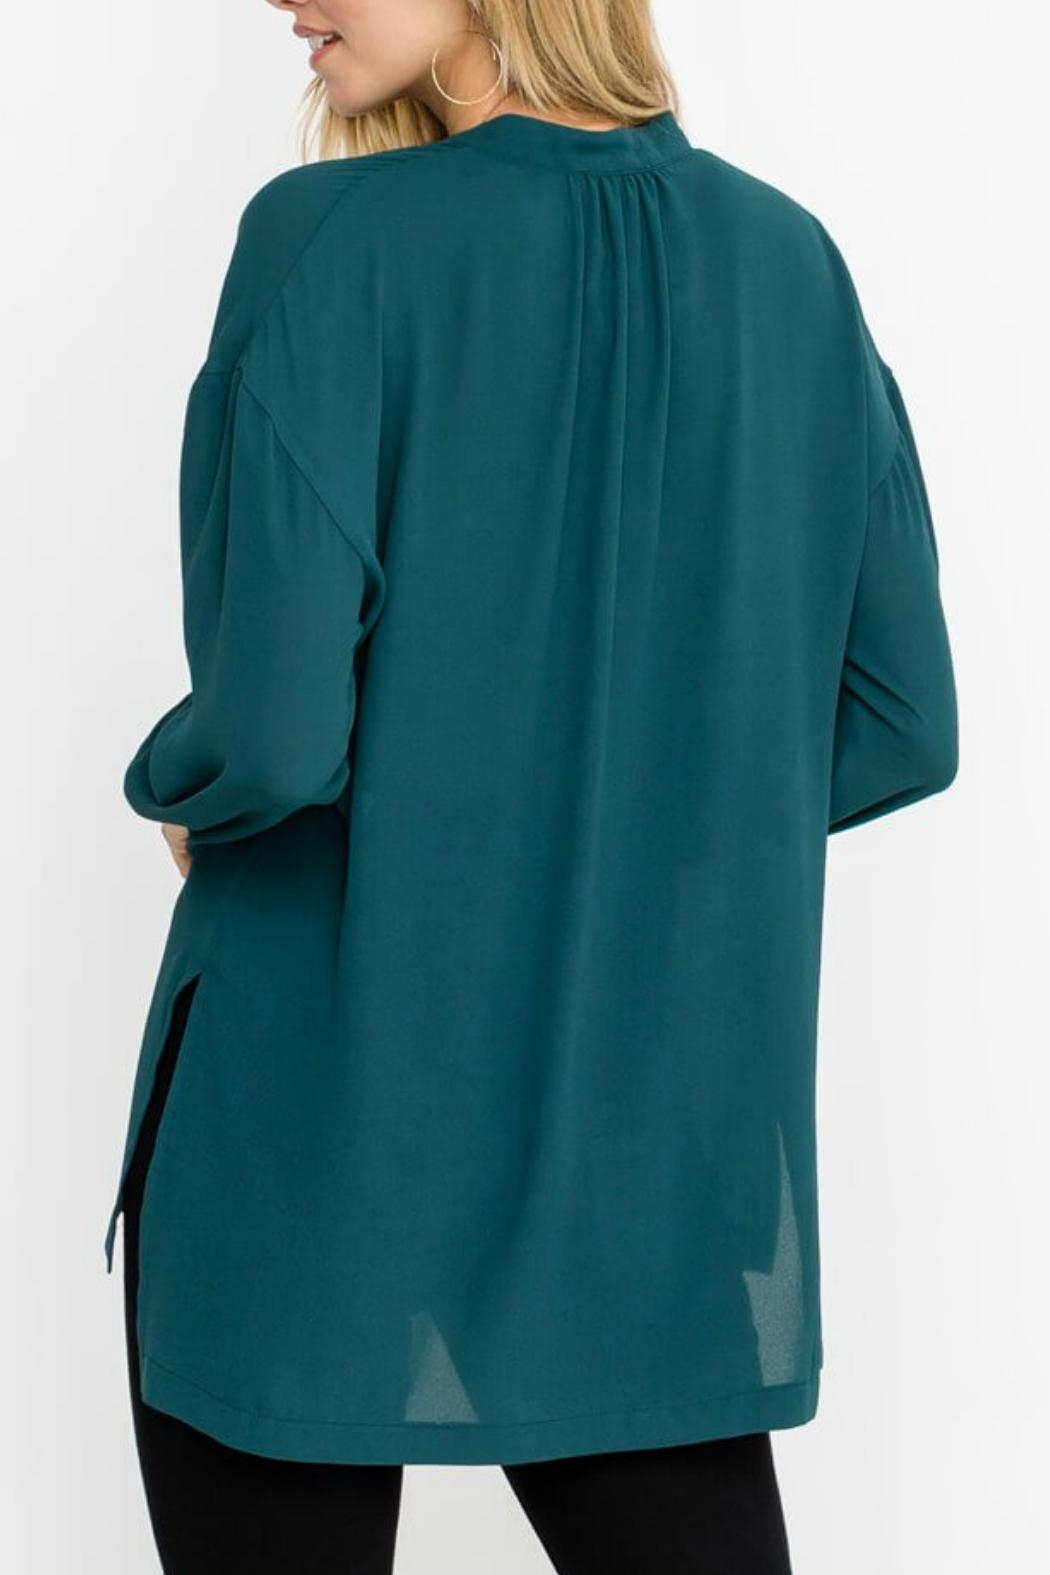 Lush Forest Green Blouse - Front Full Image